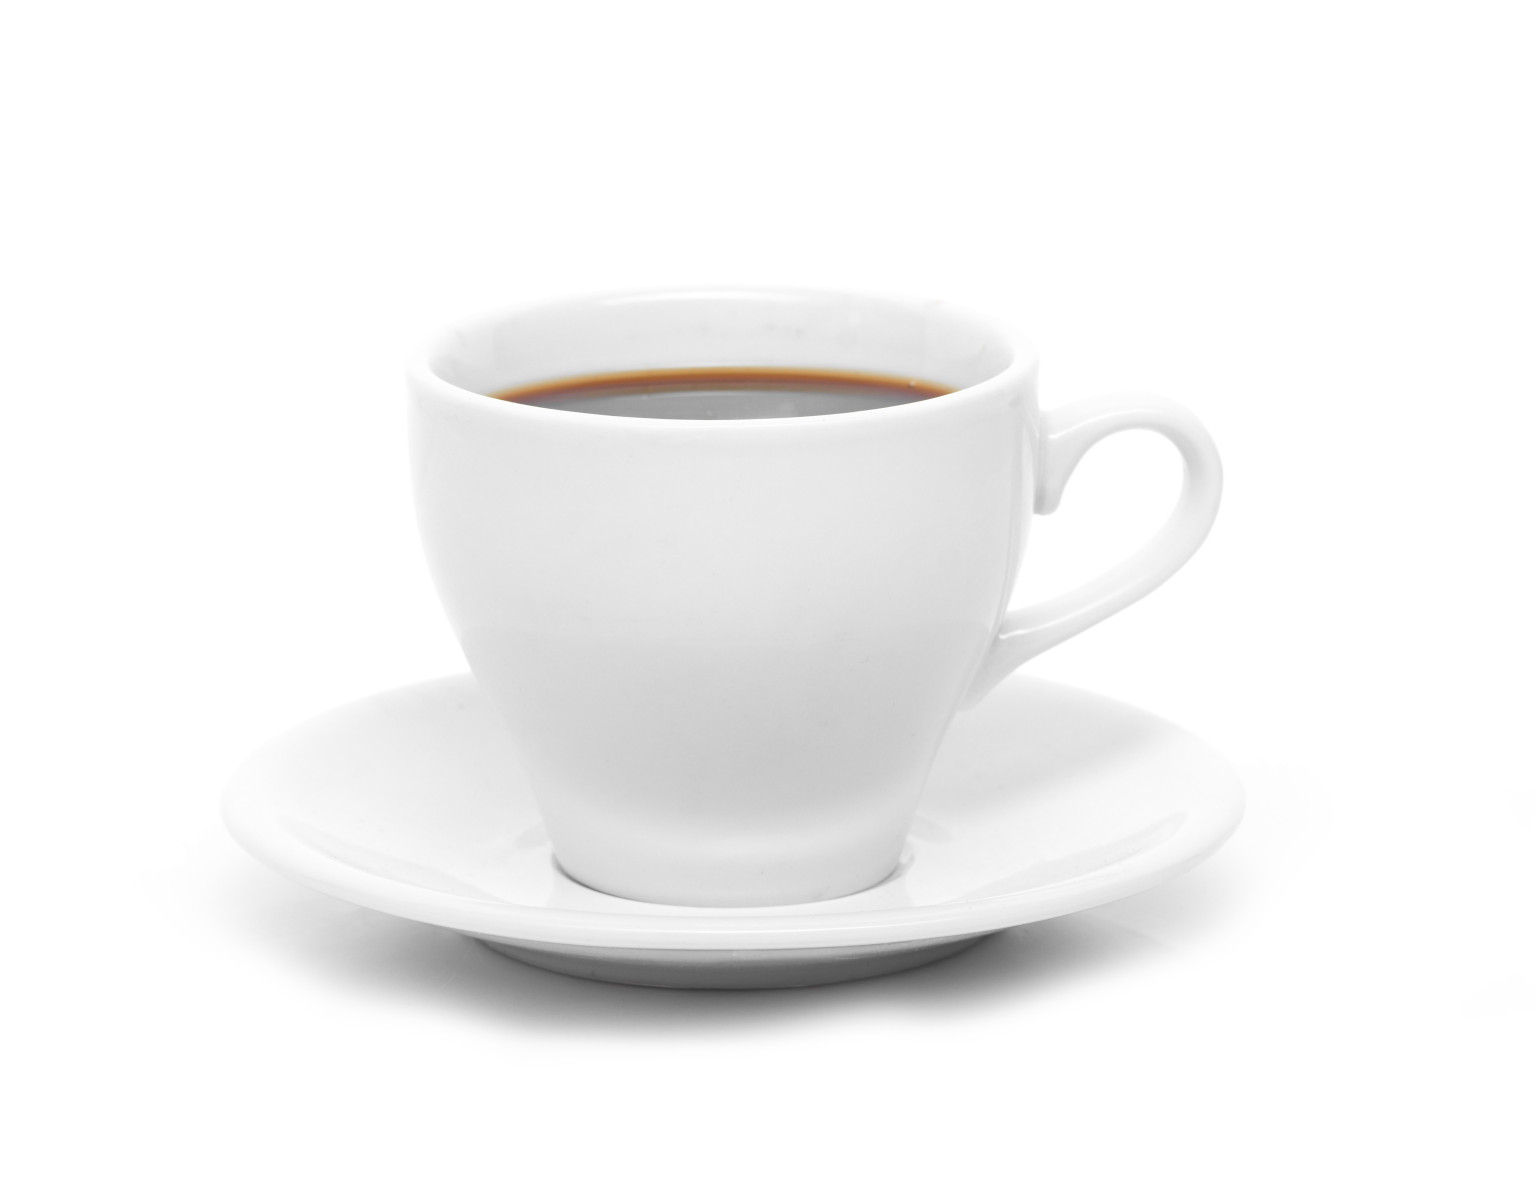 Coffe Cups Png - Free Coffee Cups Png, Download Free Clip Art, Free Clip Art on ...